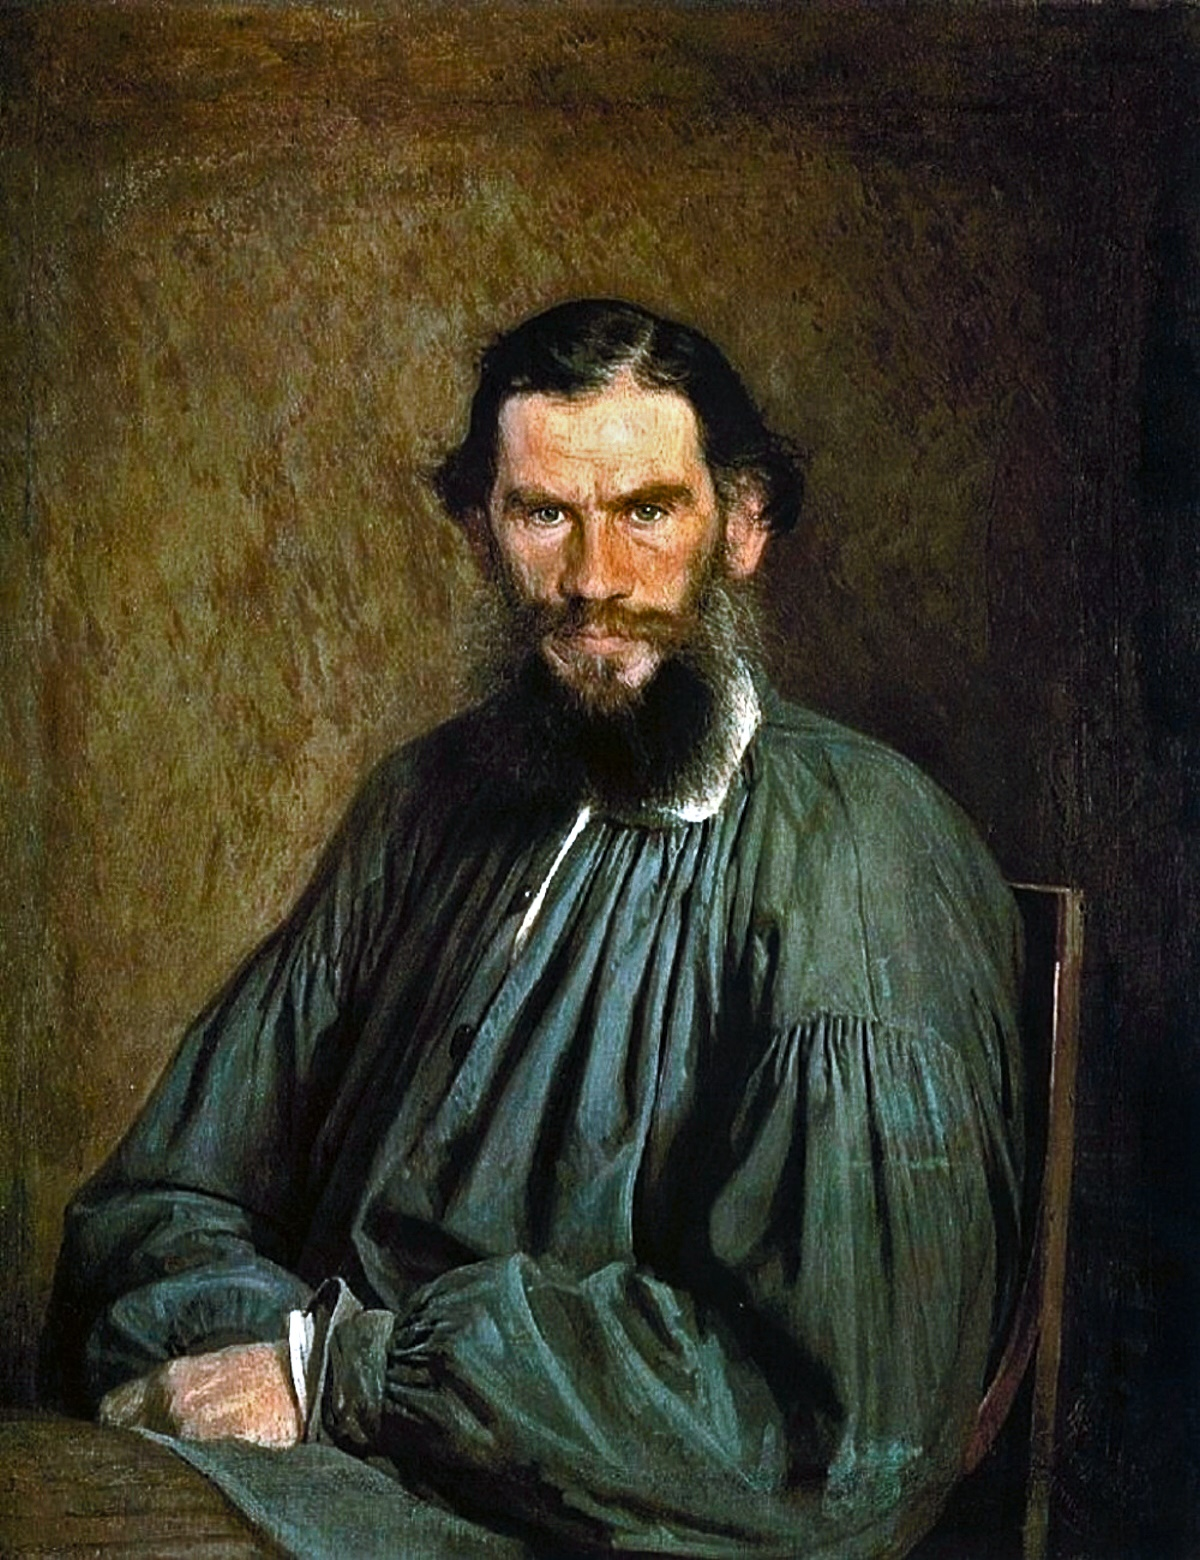 Ivan Kramskoi. A Portriat of the Author L N Tolstoy. 1873